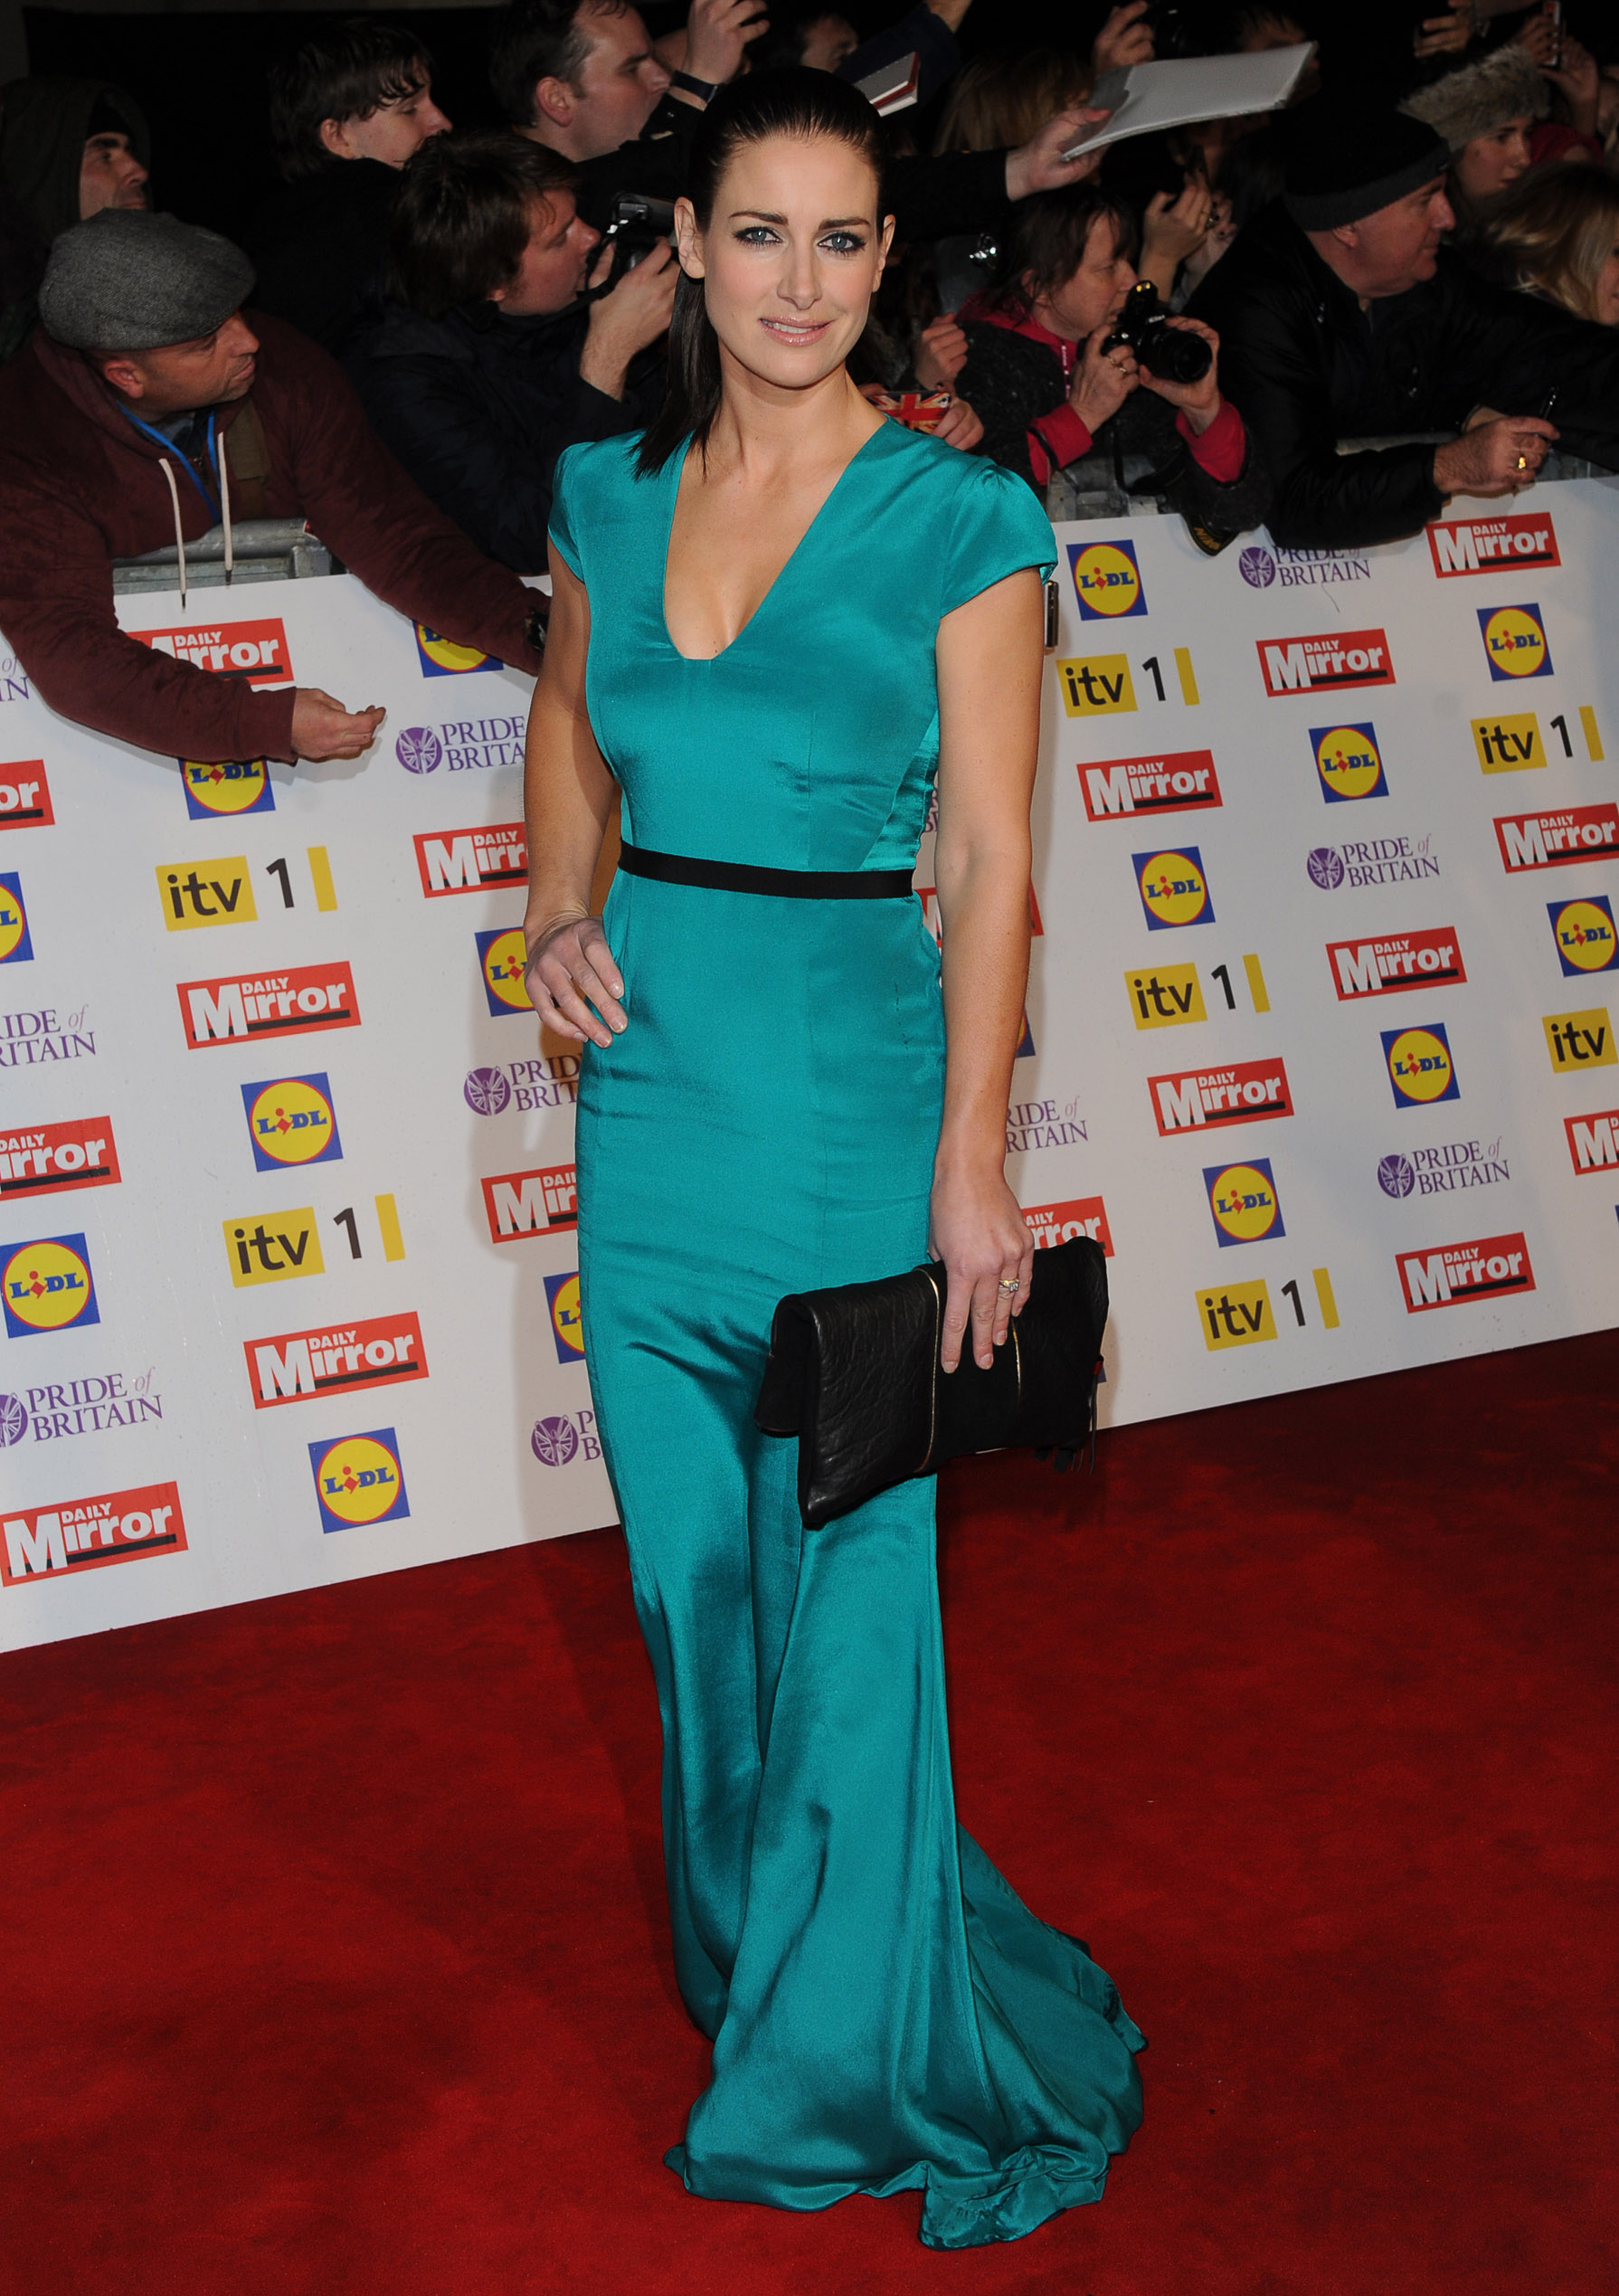 Kirsty Gallacher 2012 : Kirsty Gallacher cleavage-01